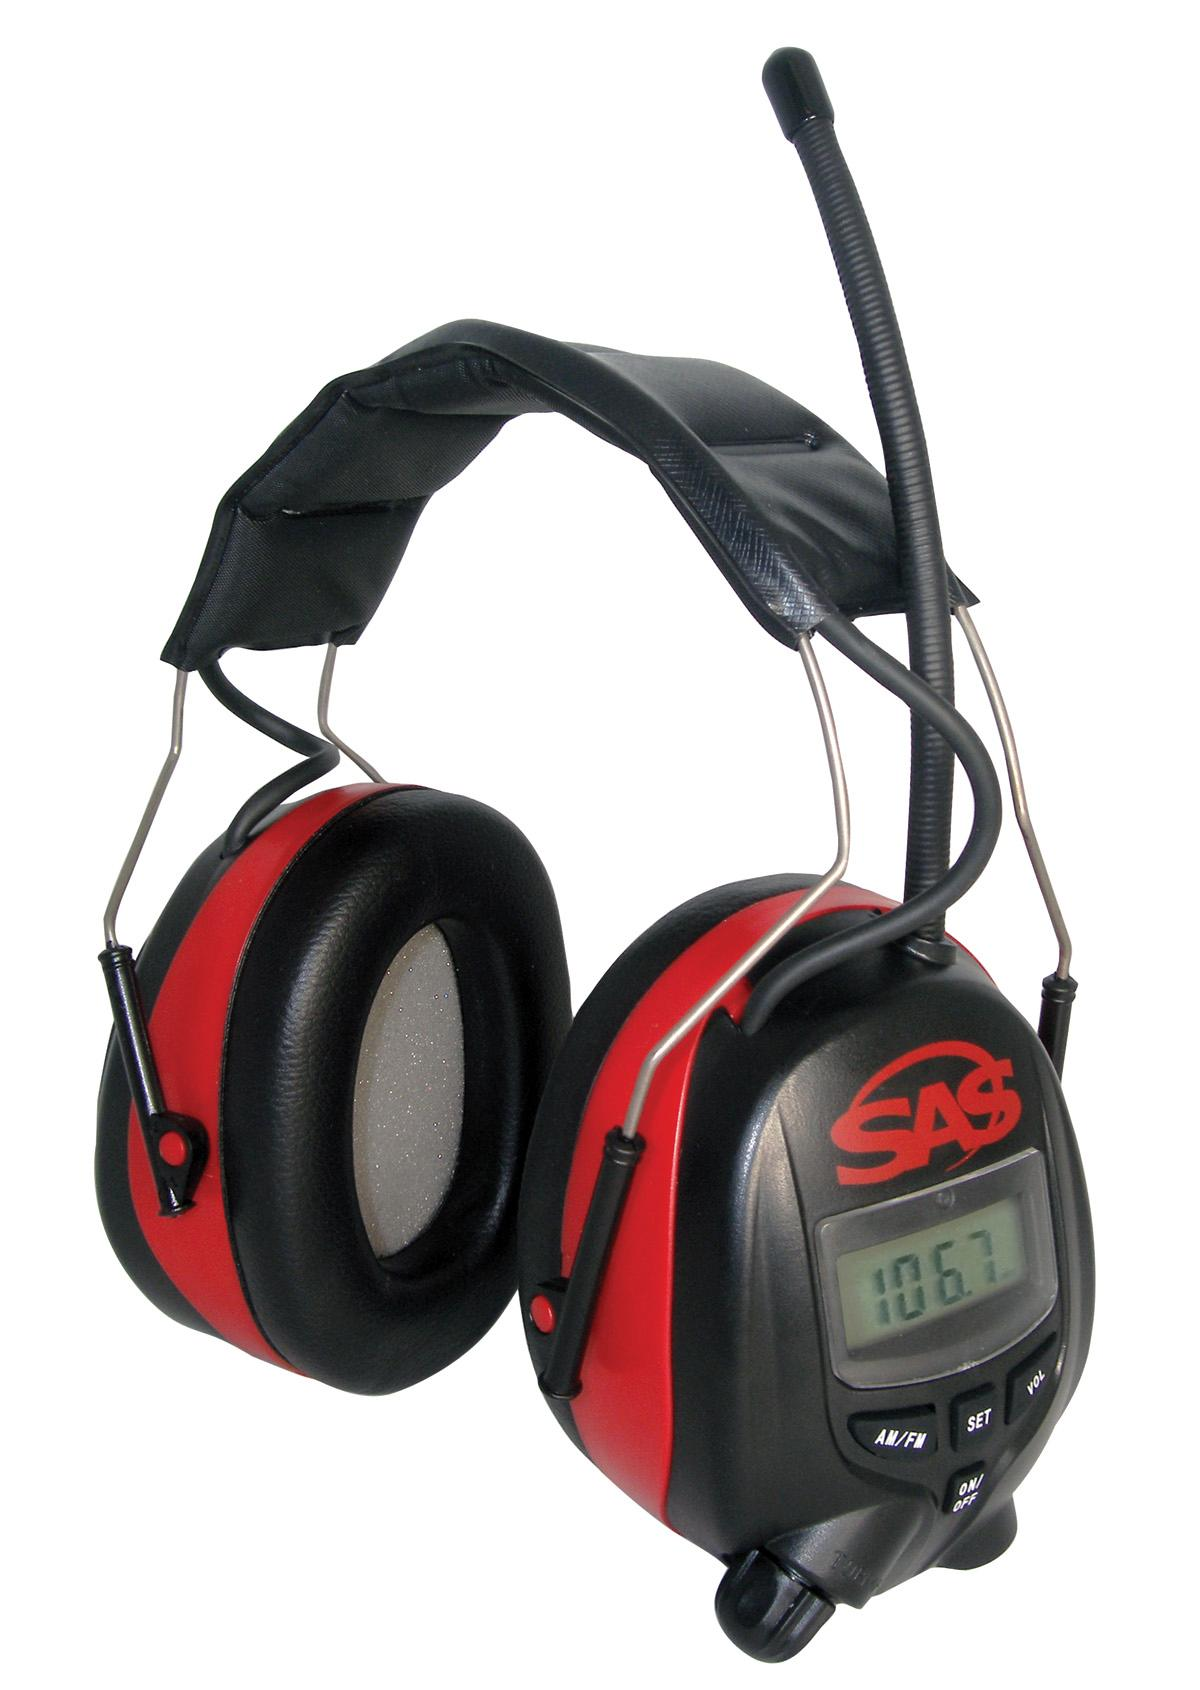 Sas safety 6108 digital earmuff hearing protection with amfm radio from the manufacturer ccuart Choice Image